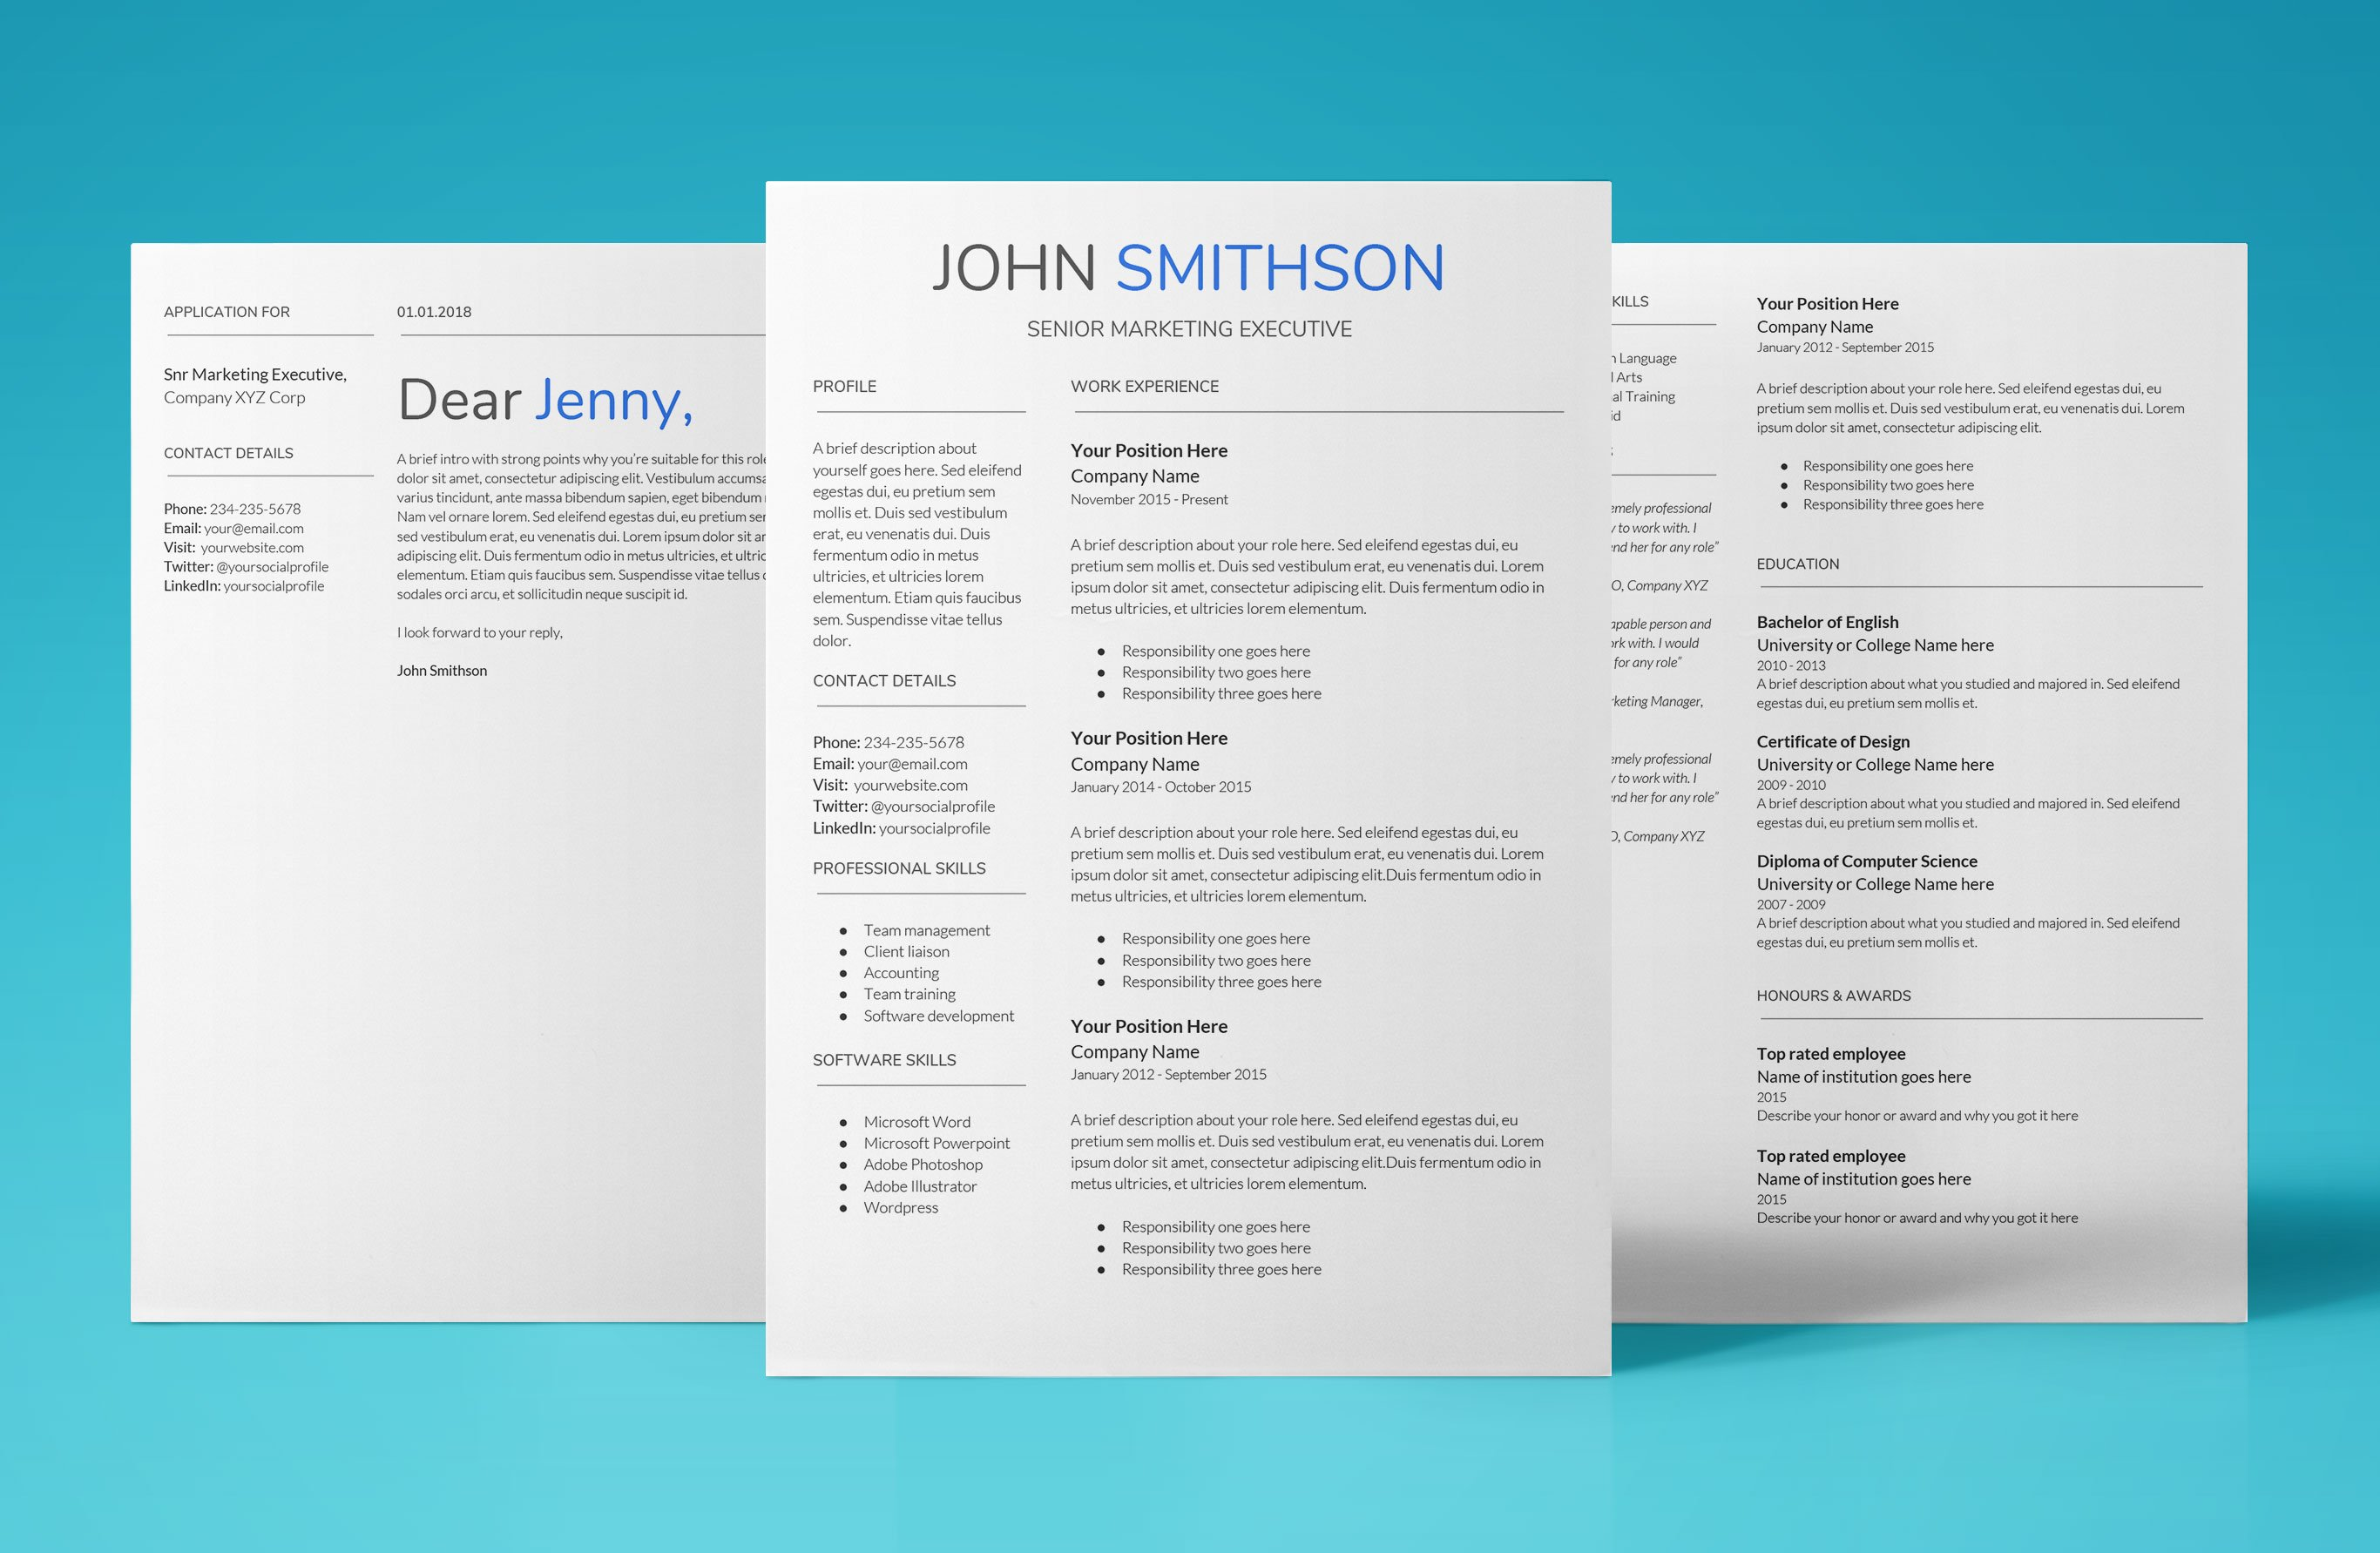 Google Docs Resumes Templates Fantastic Google Docs Resume Template Download And Edit